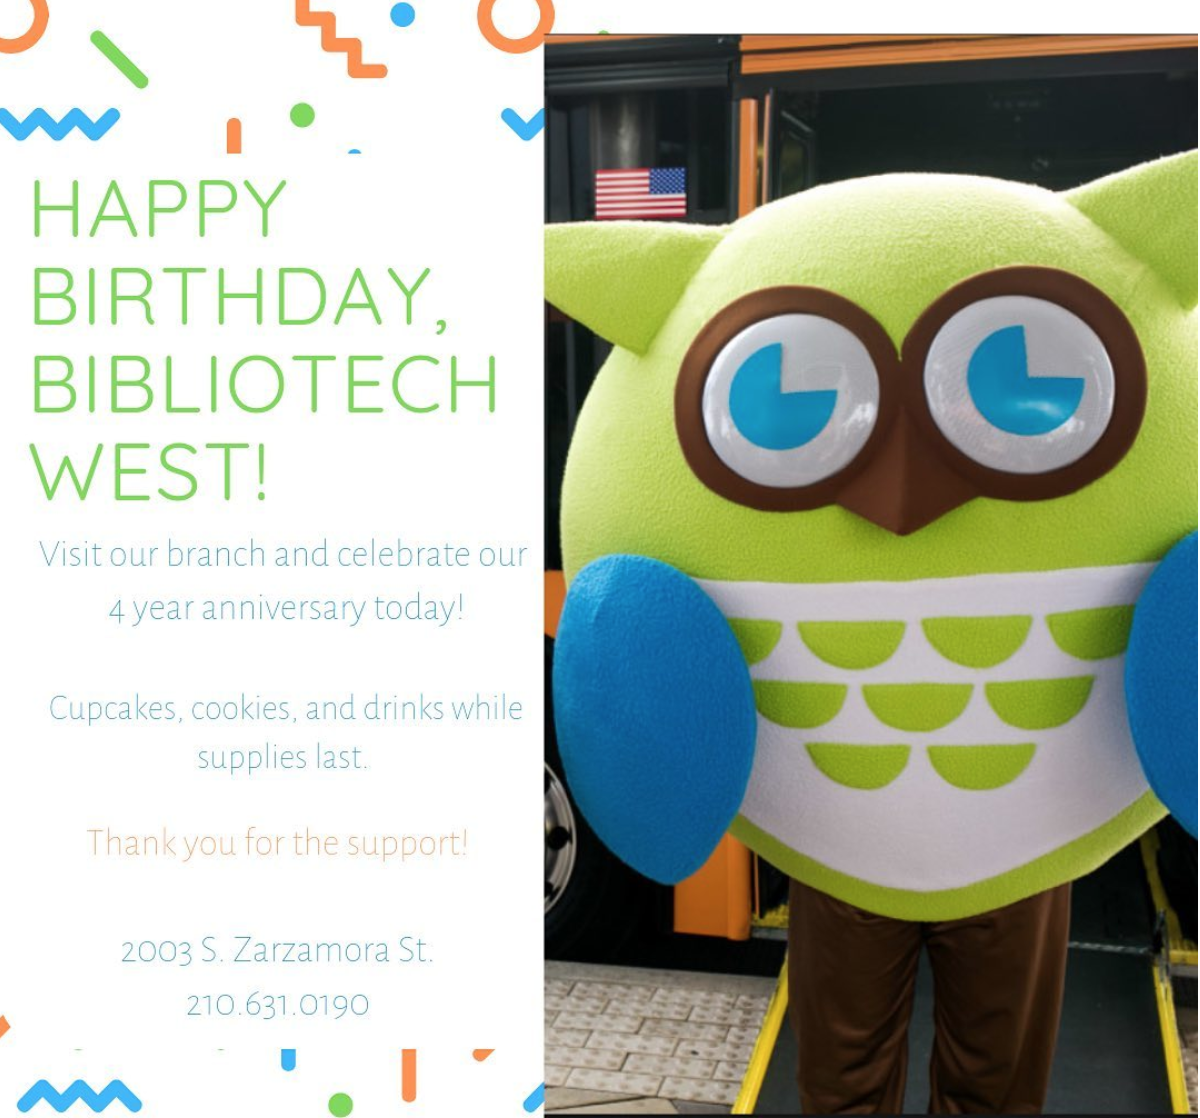 Happy Birthday BiblioTech West!